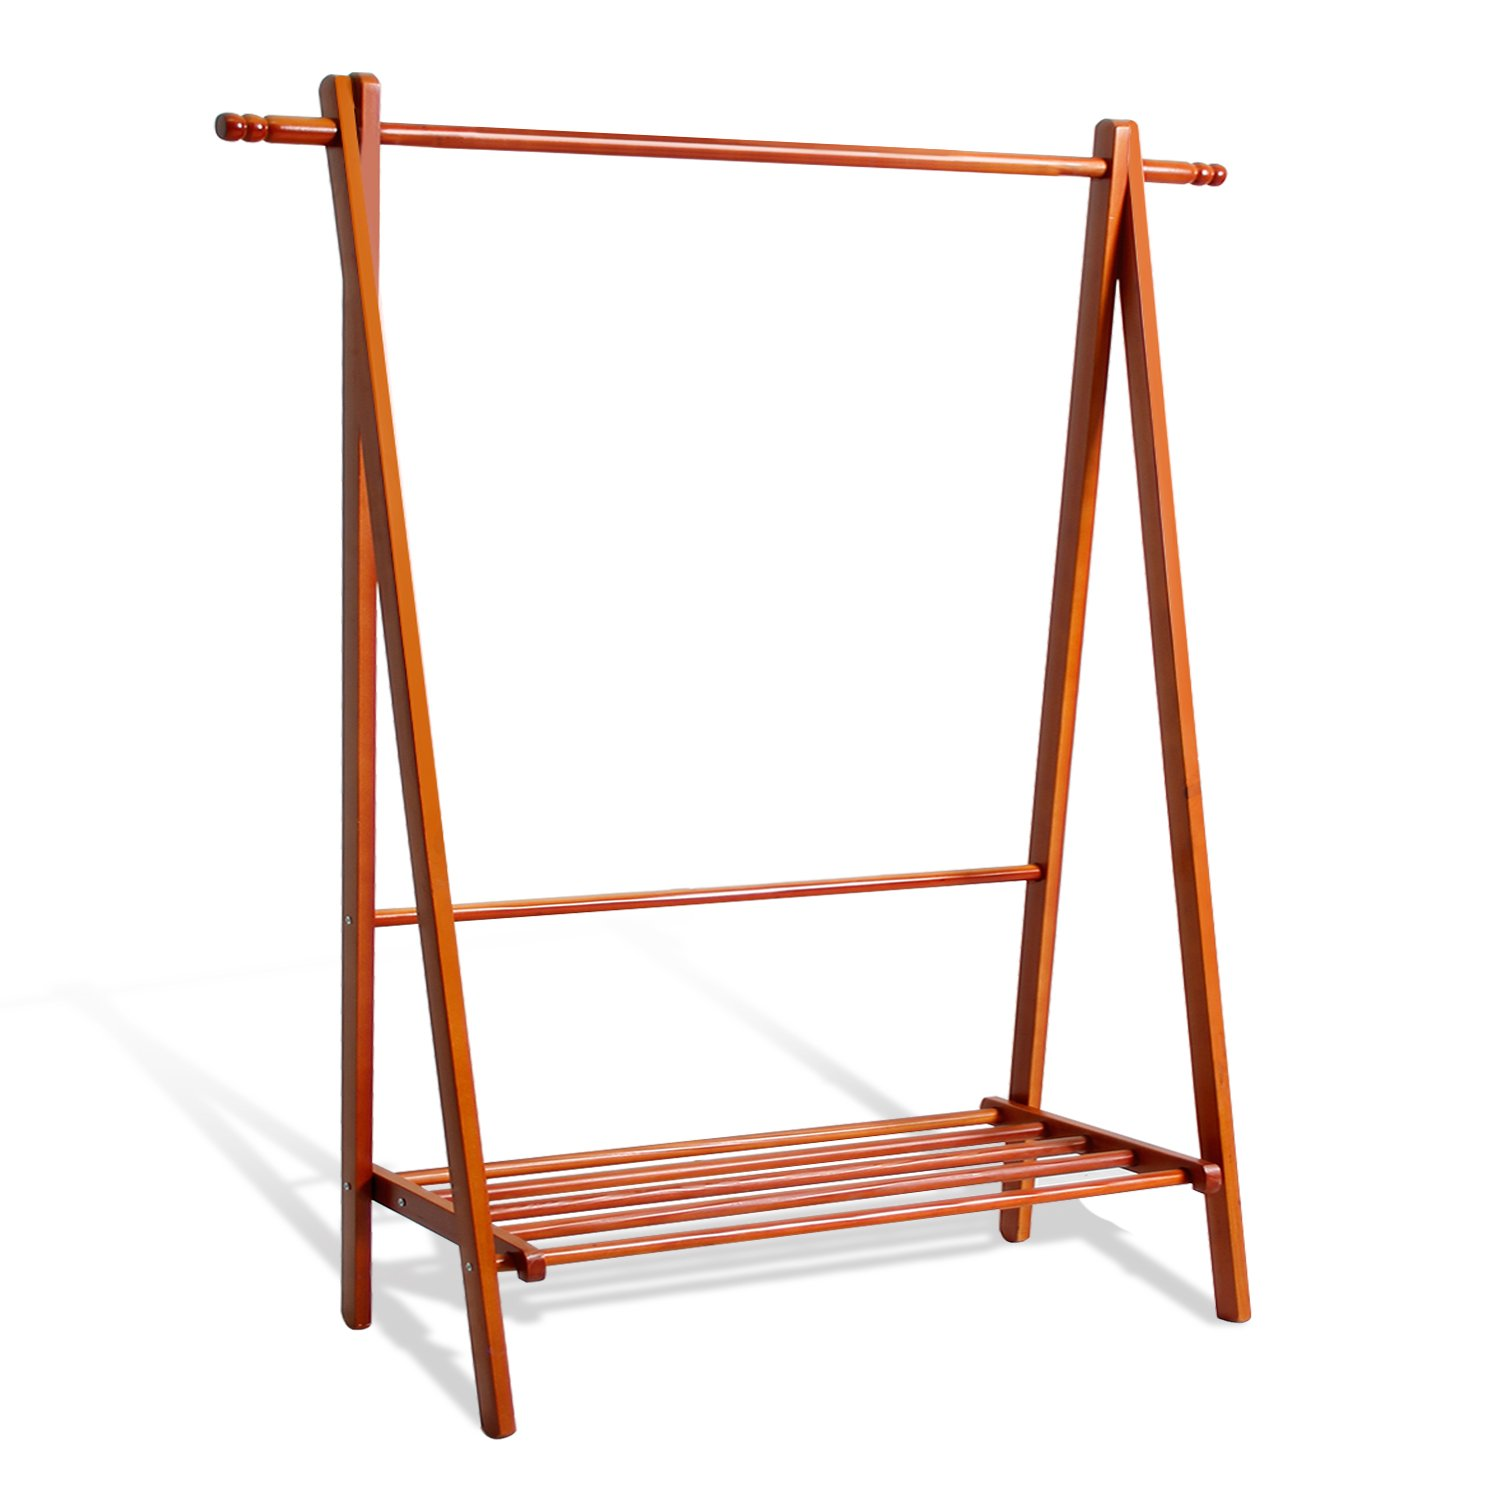 soges Garment Clothing Rack 47 inch Solid Wood Coat Stand Storage Rack with Shelf for Hats, Bags, Shoe, Clothes Living Room Furniture, Teak BS2007-TK